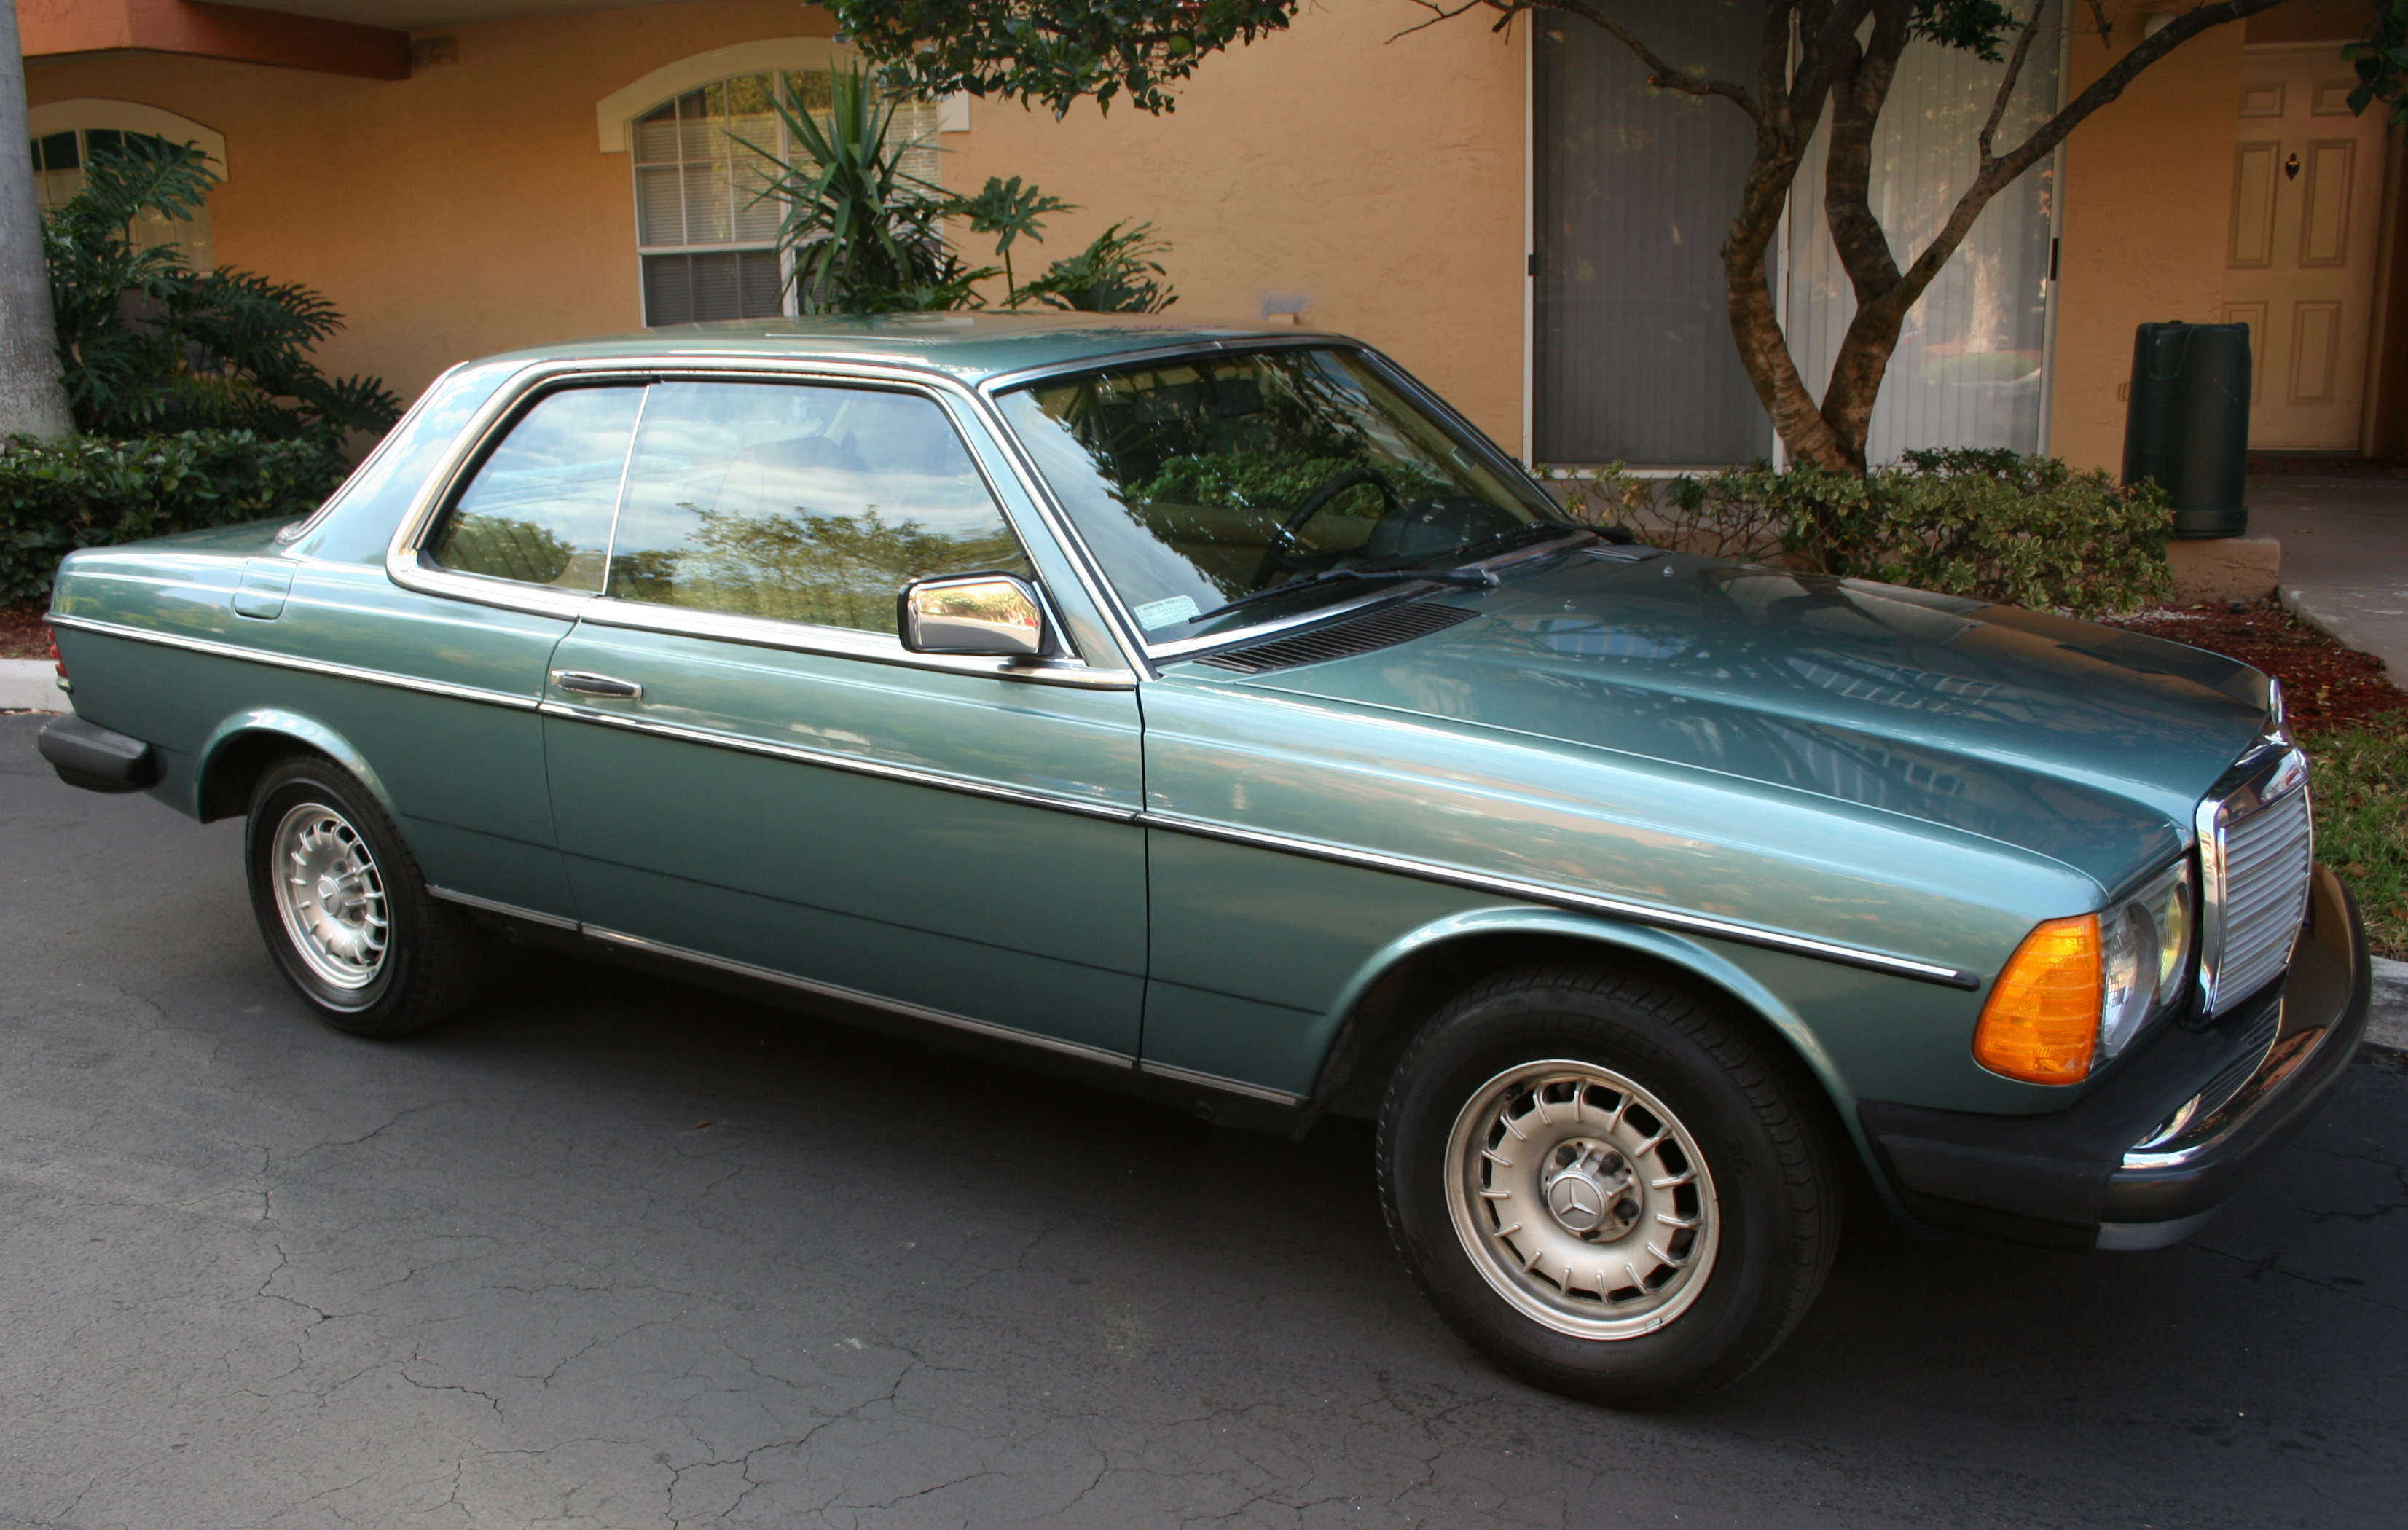 Mercedes-Benz W123 1975 - 1985 Coupe #1